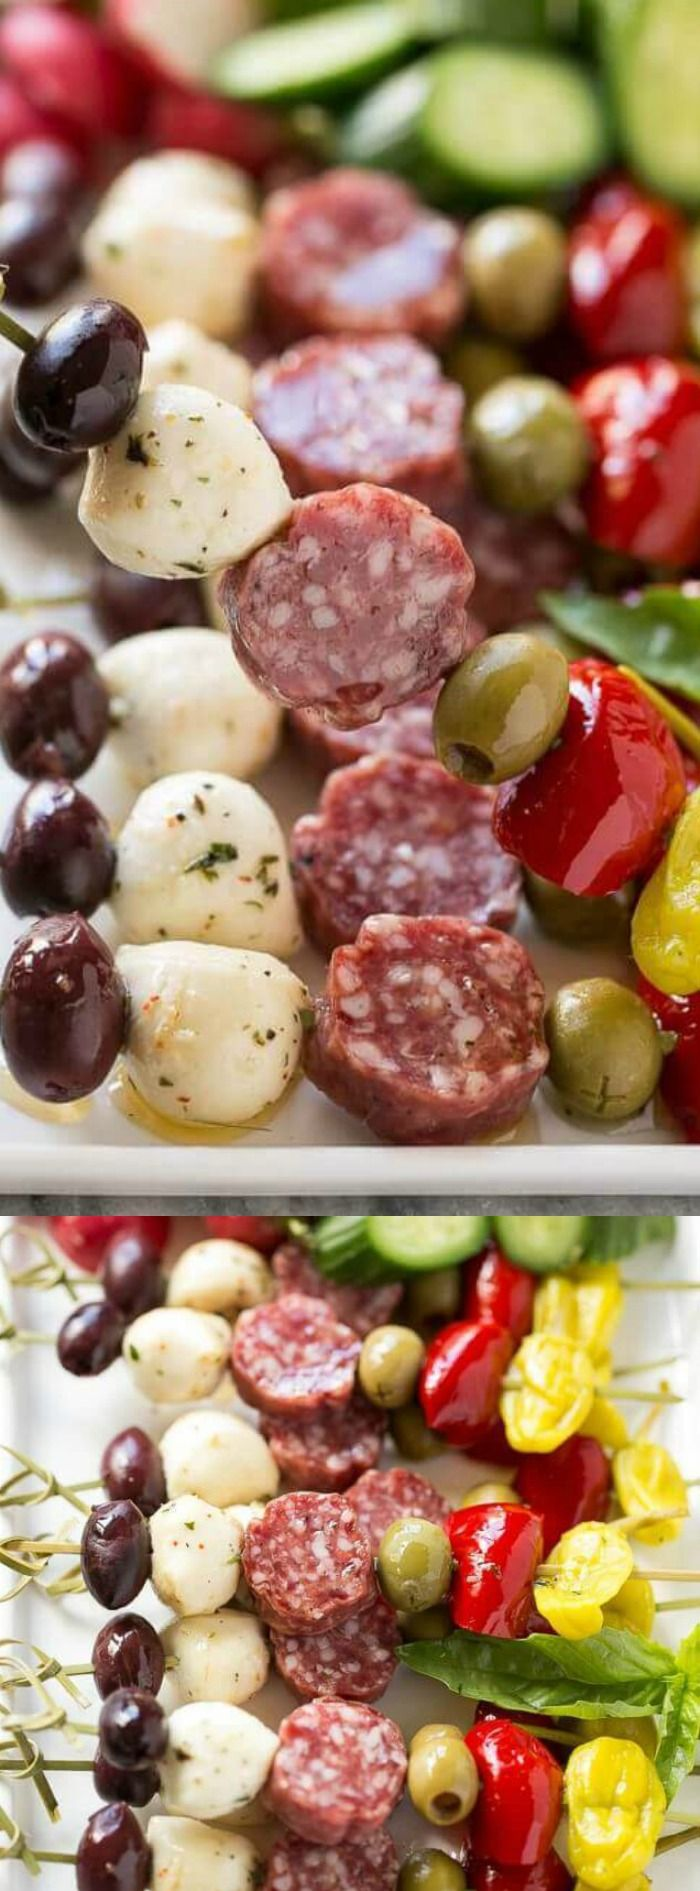 These easy to make Antipasto Skewers from Dinner at the Zoo are an appetizer that will impress your friends and family for sure!